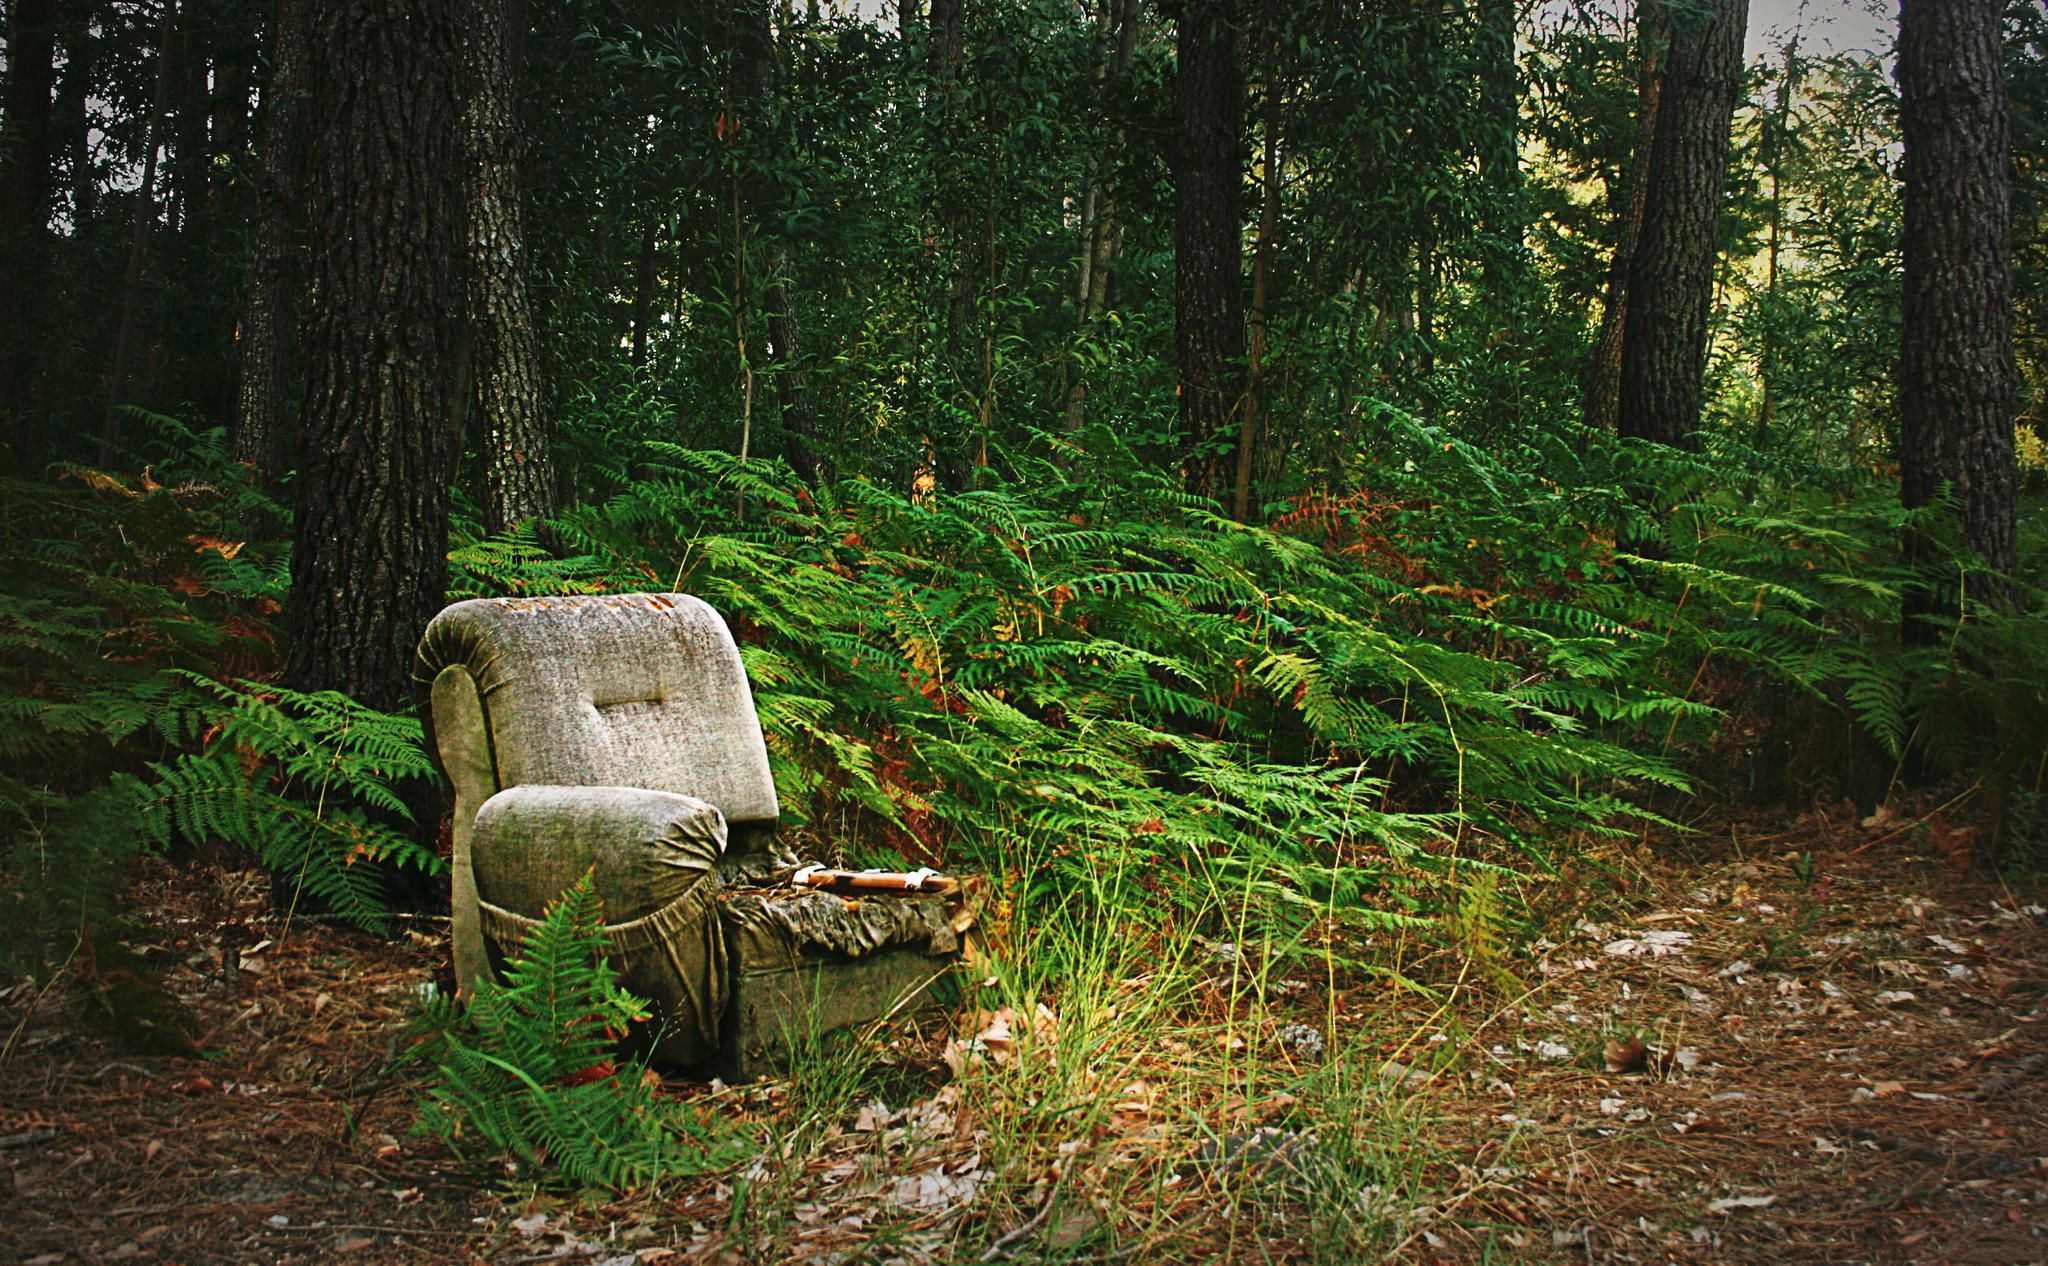 First Seat by Félix Pagaimo on 500px